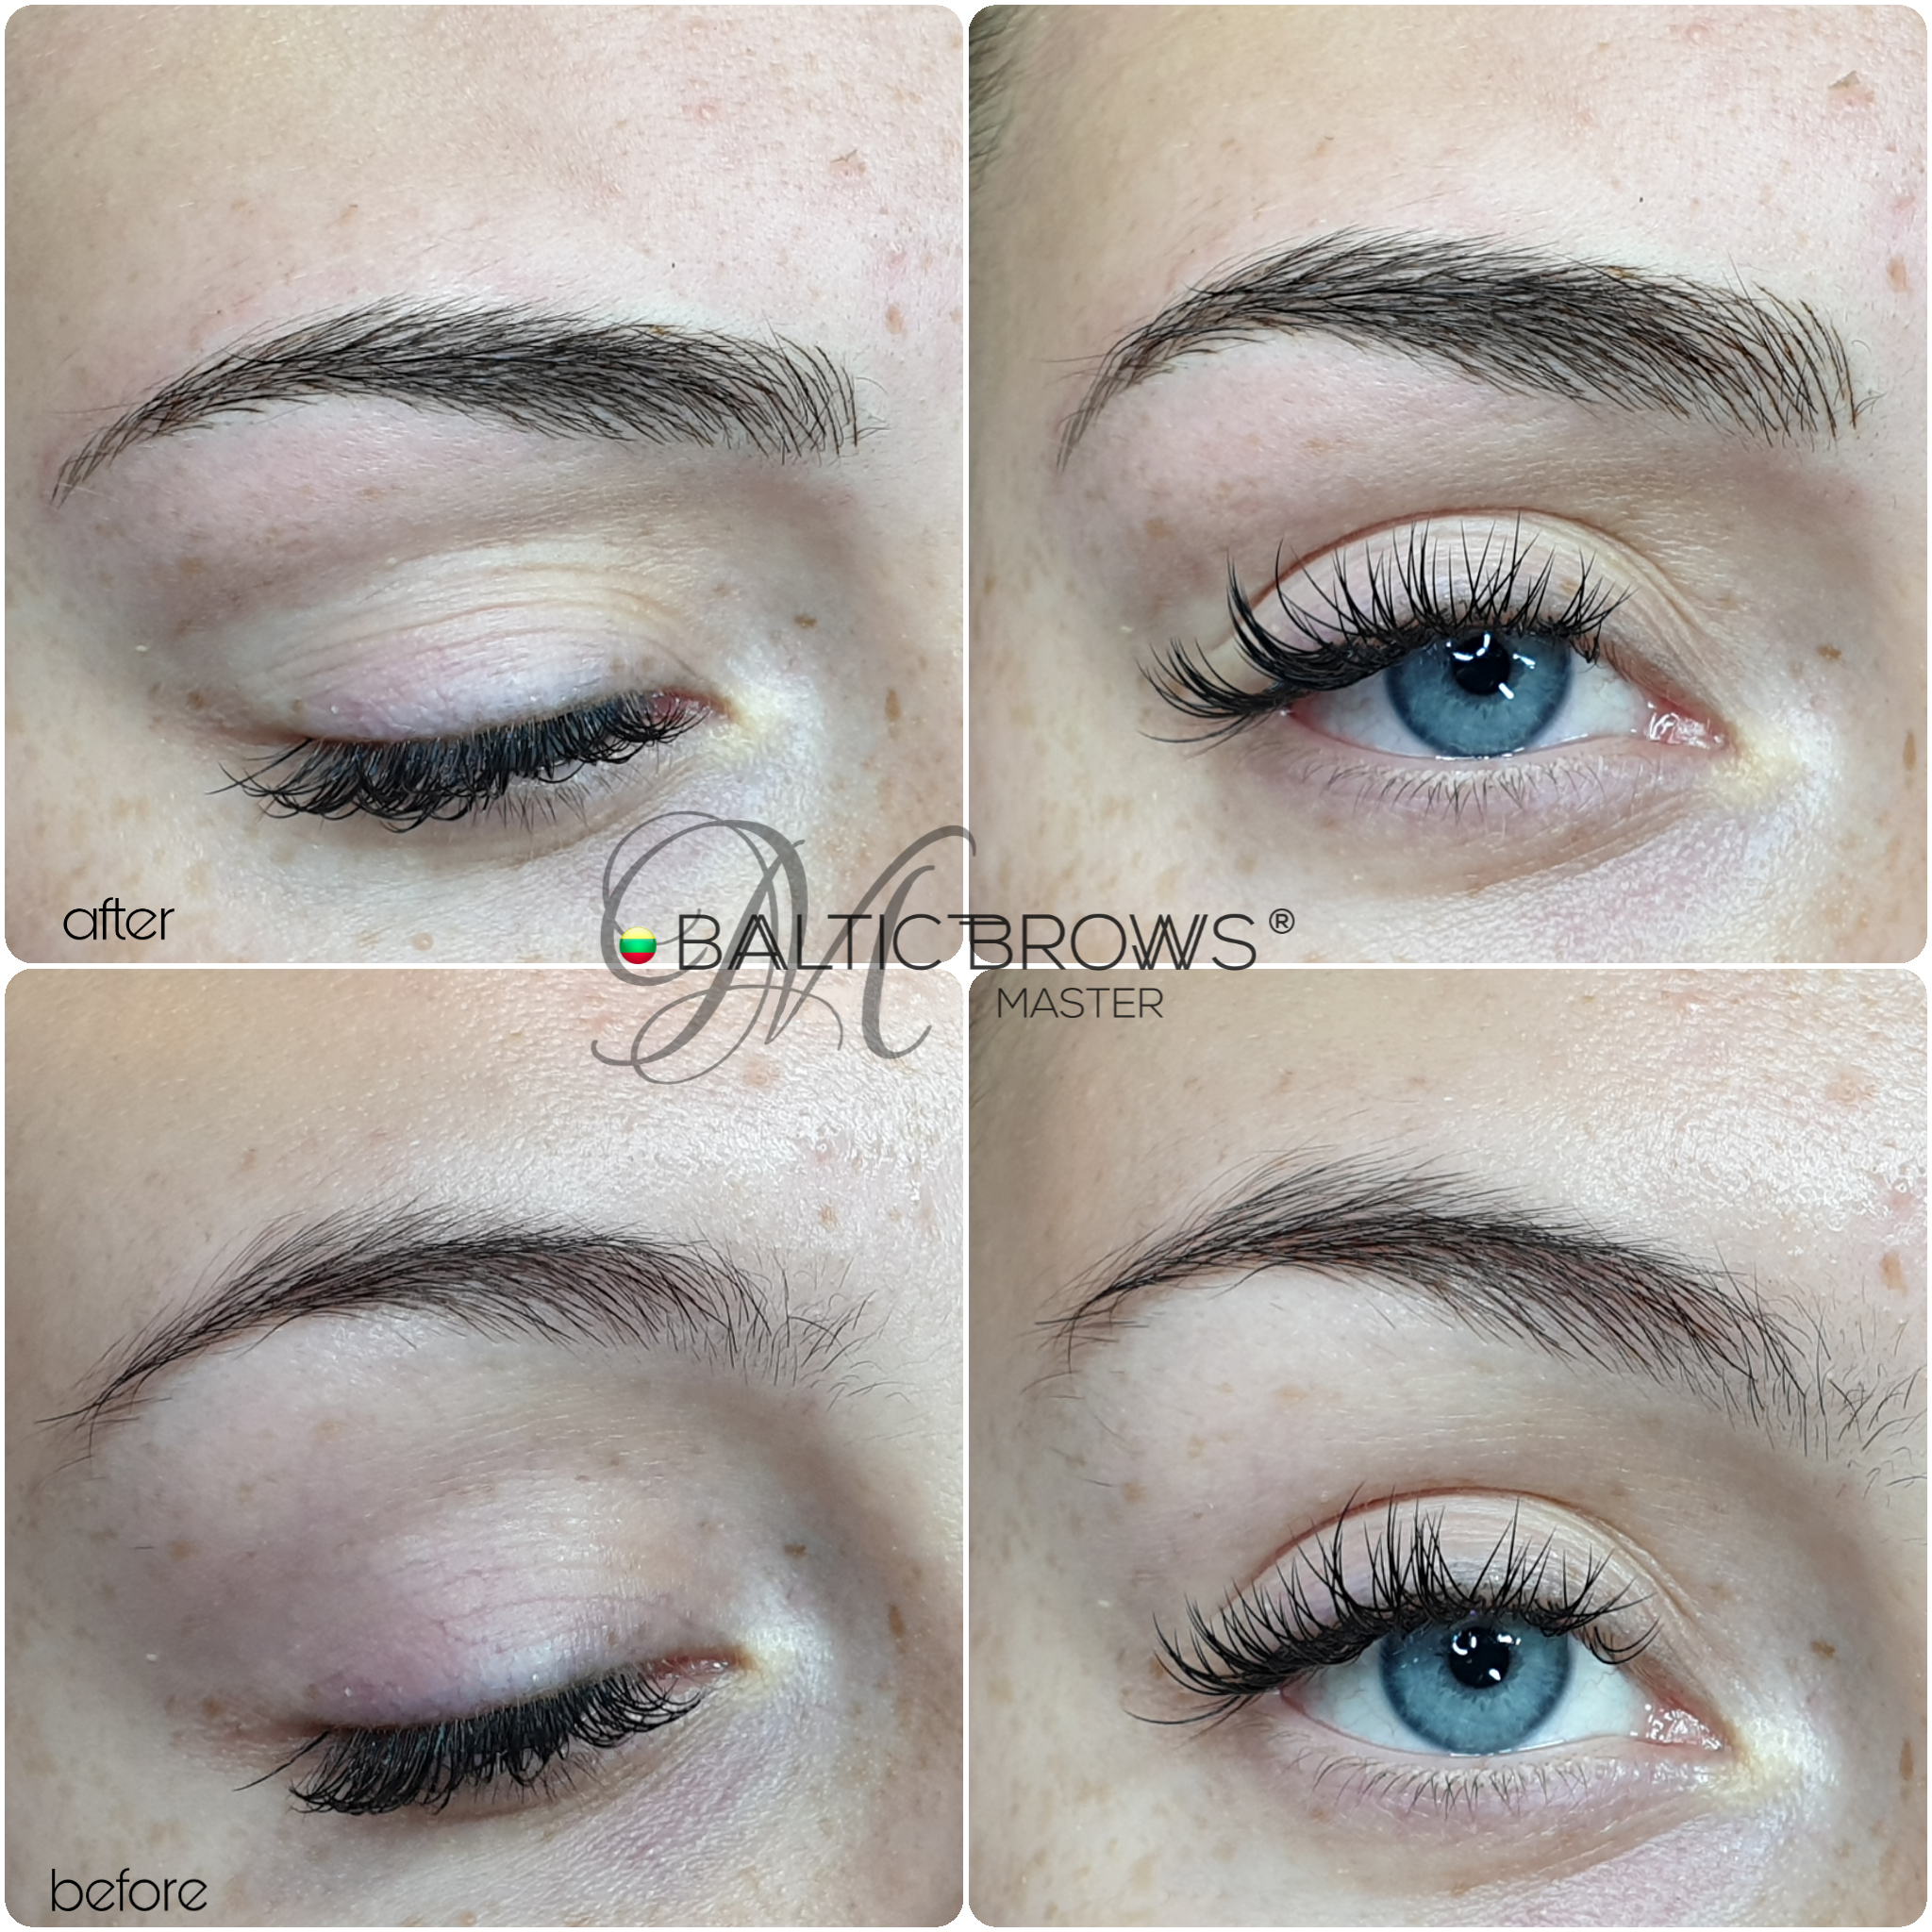 Microblading 6D Brows - Balticbrows